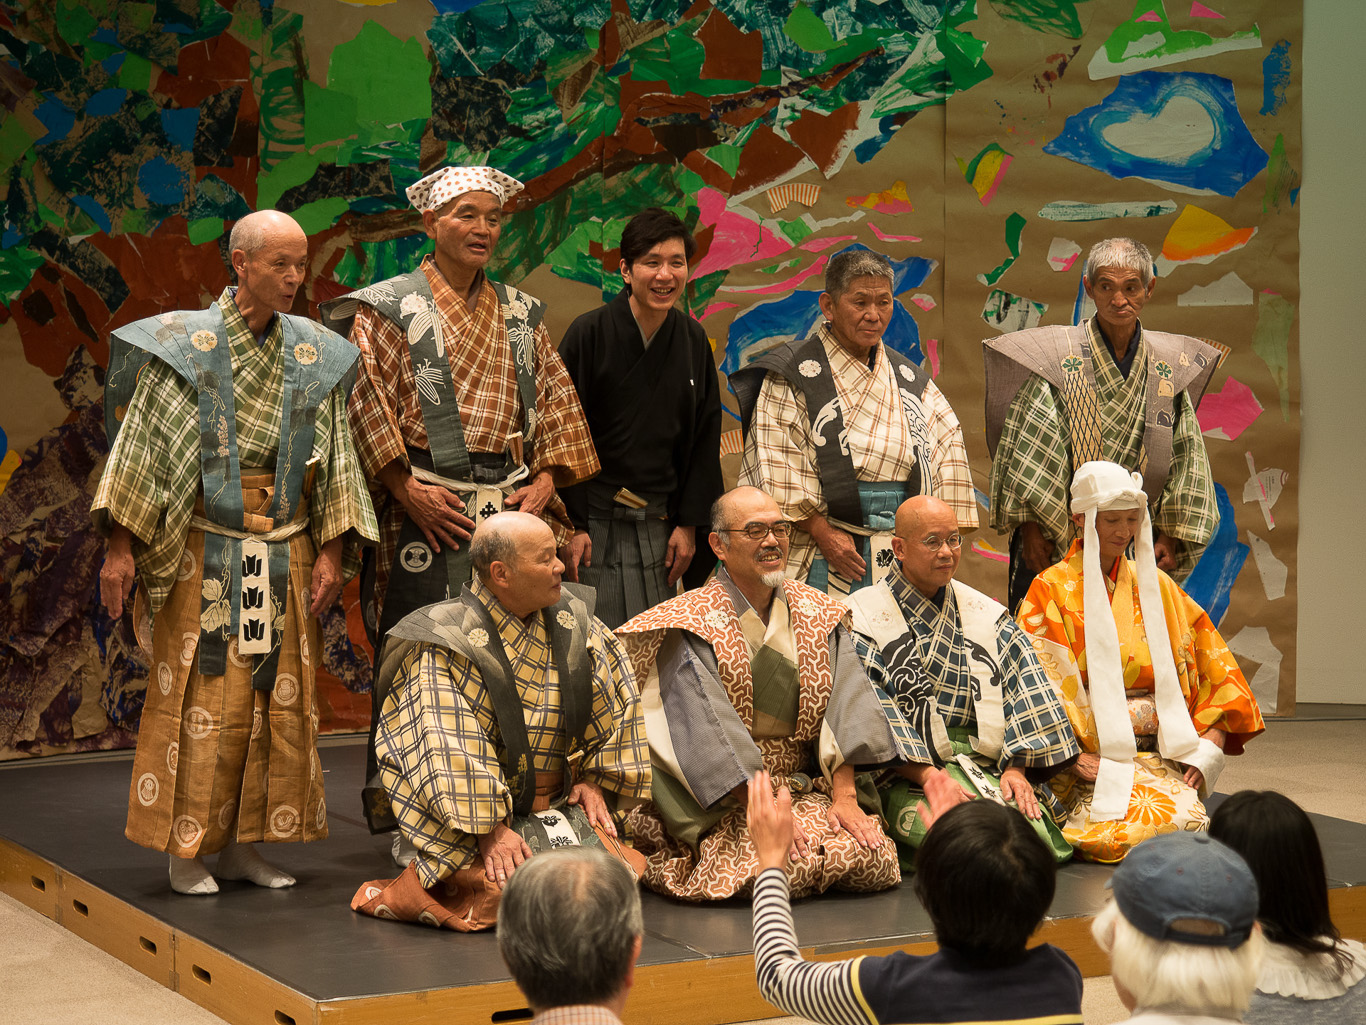 [Figure 10: At the end of the kyōgen performance at the 2014 Yokohama Triennale]